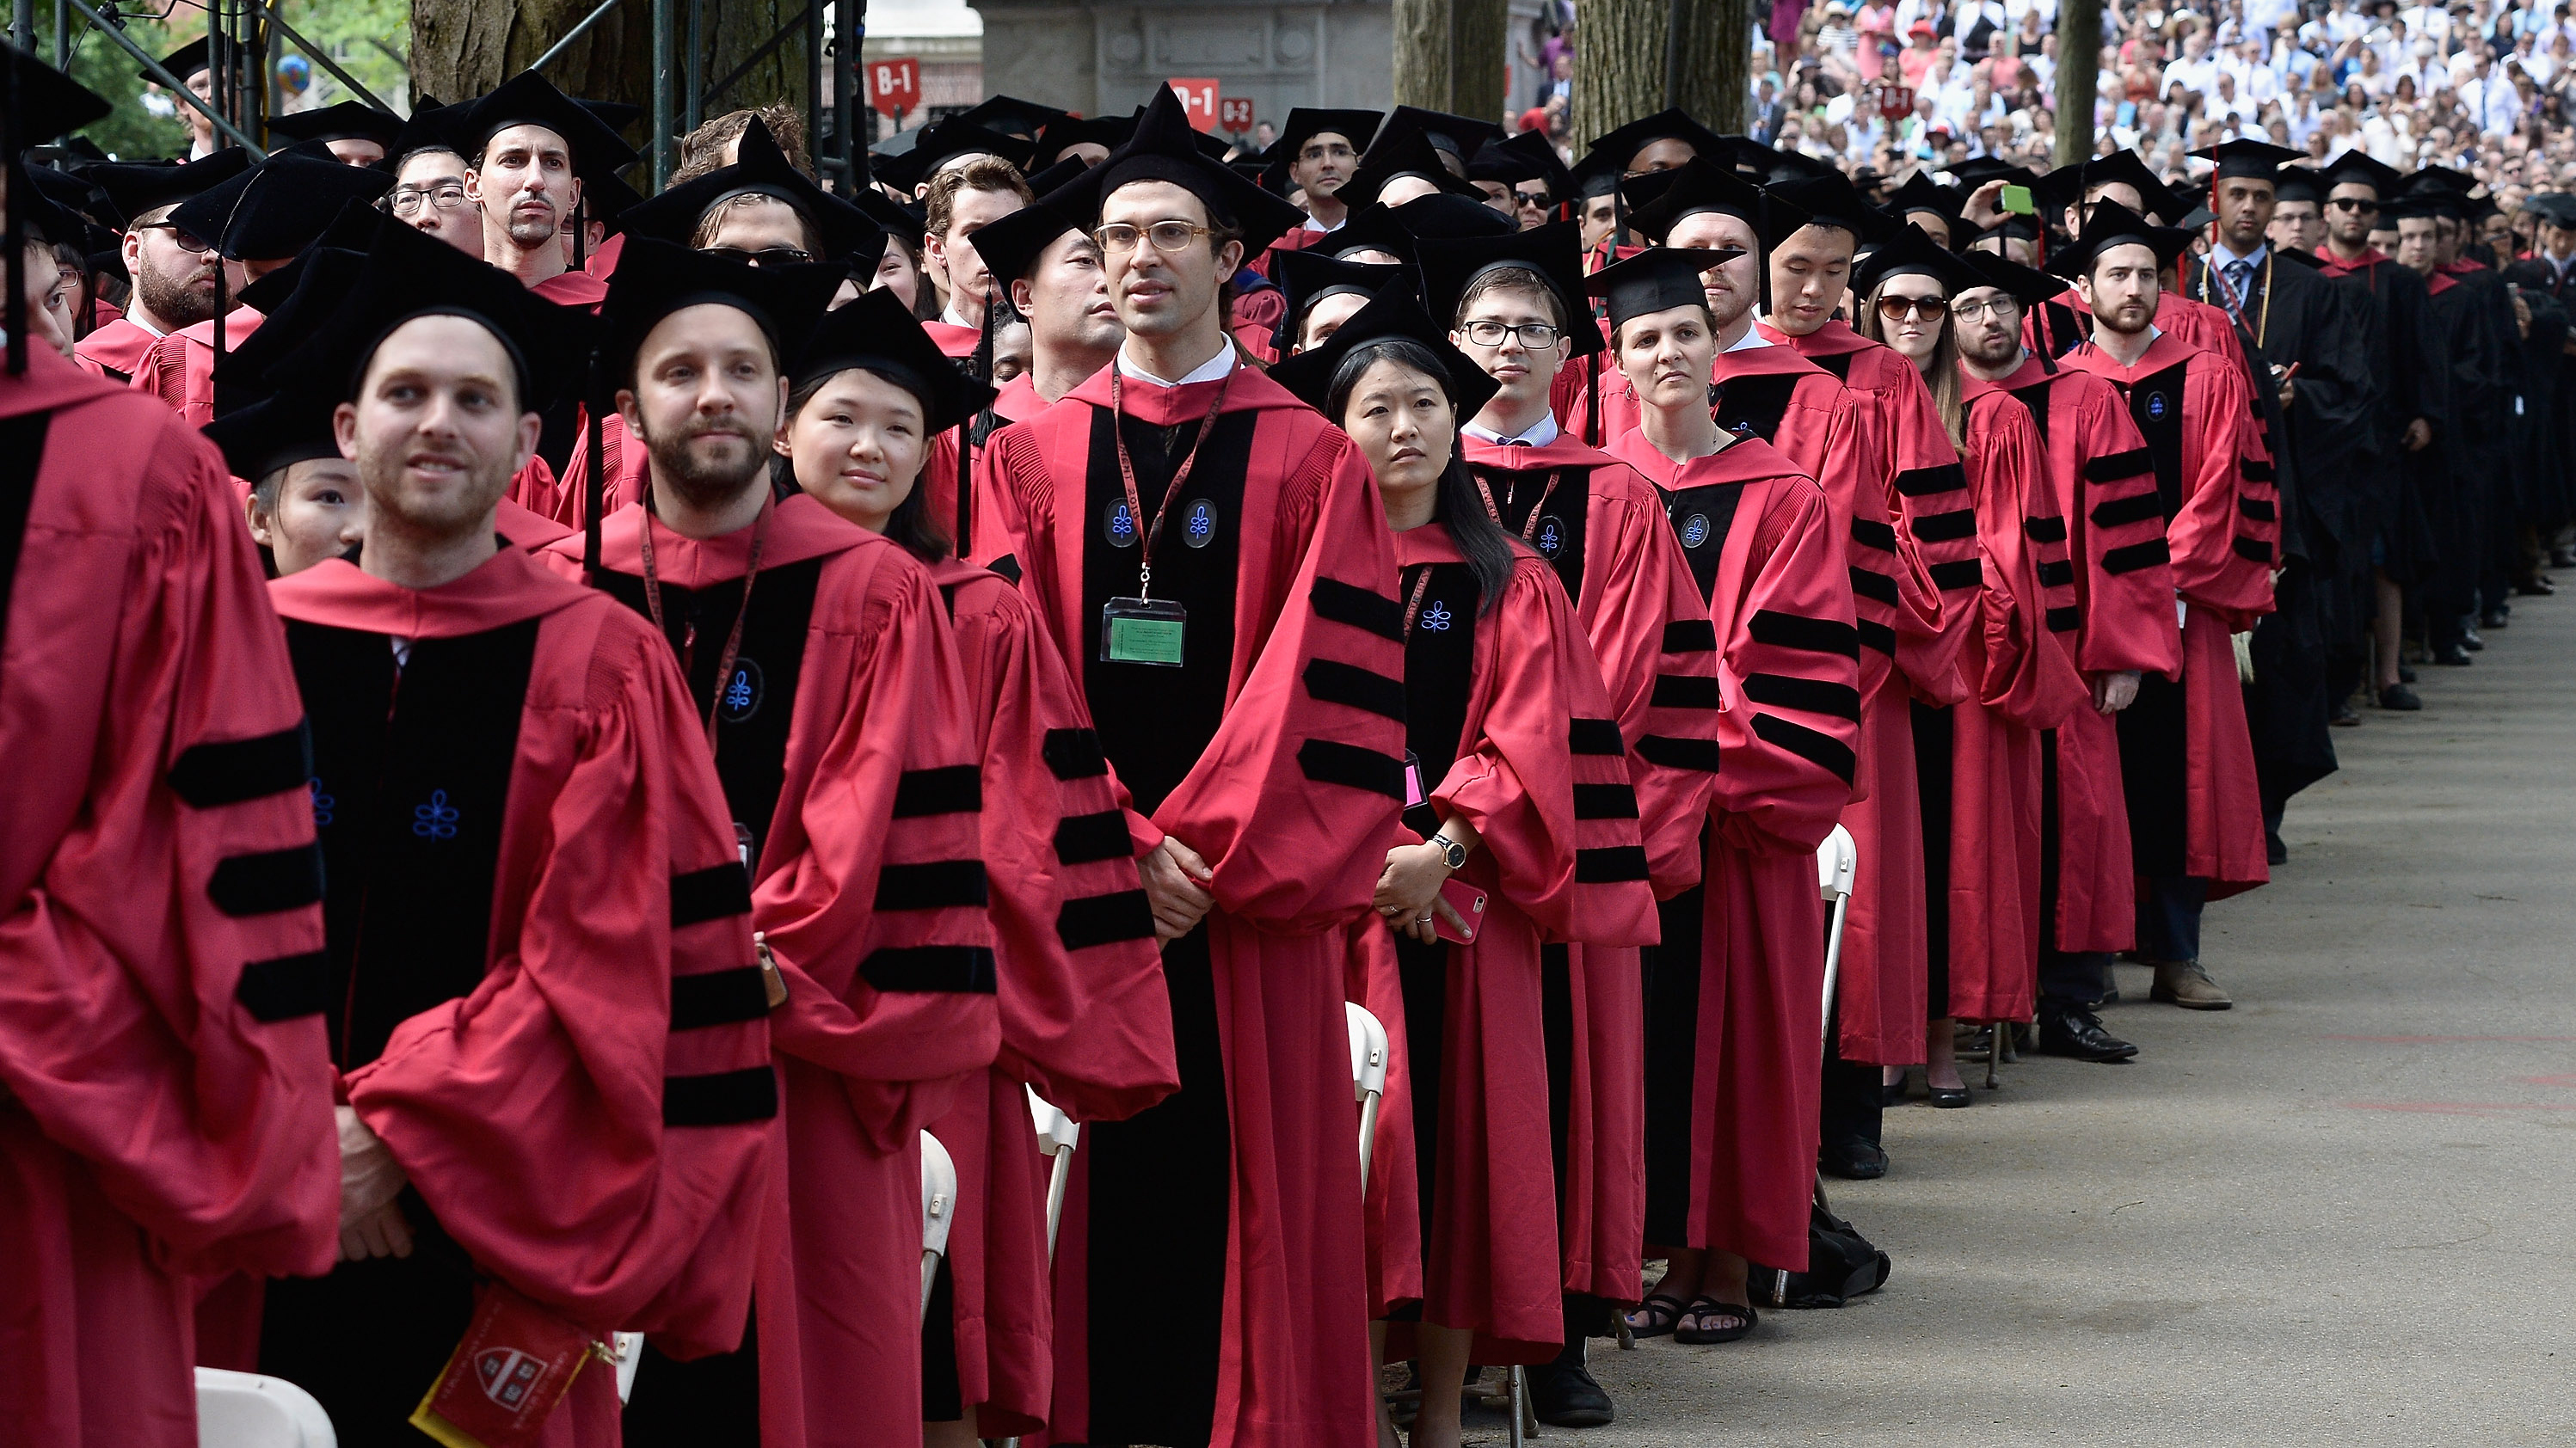 Why Are Highly Educated Americans Getting More Liberal?